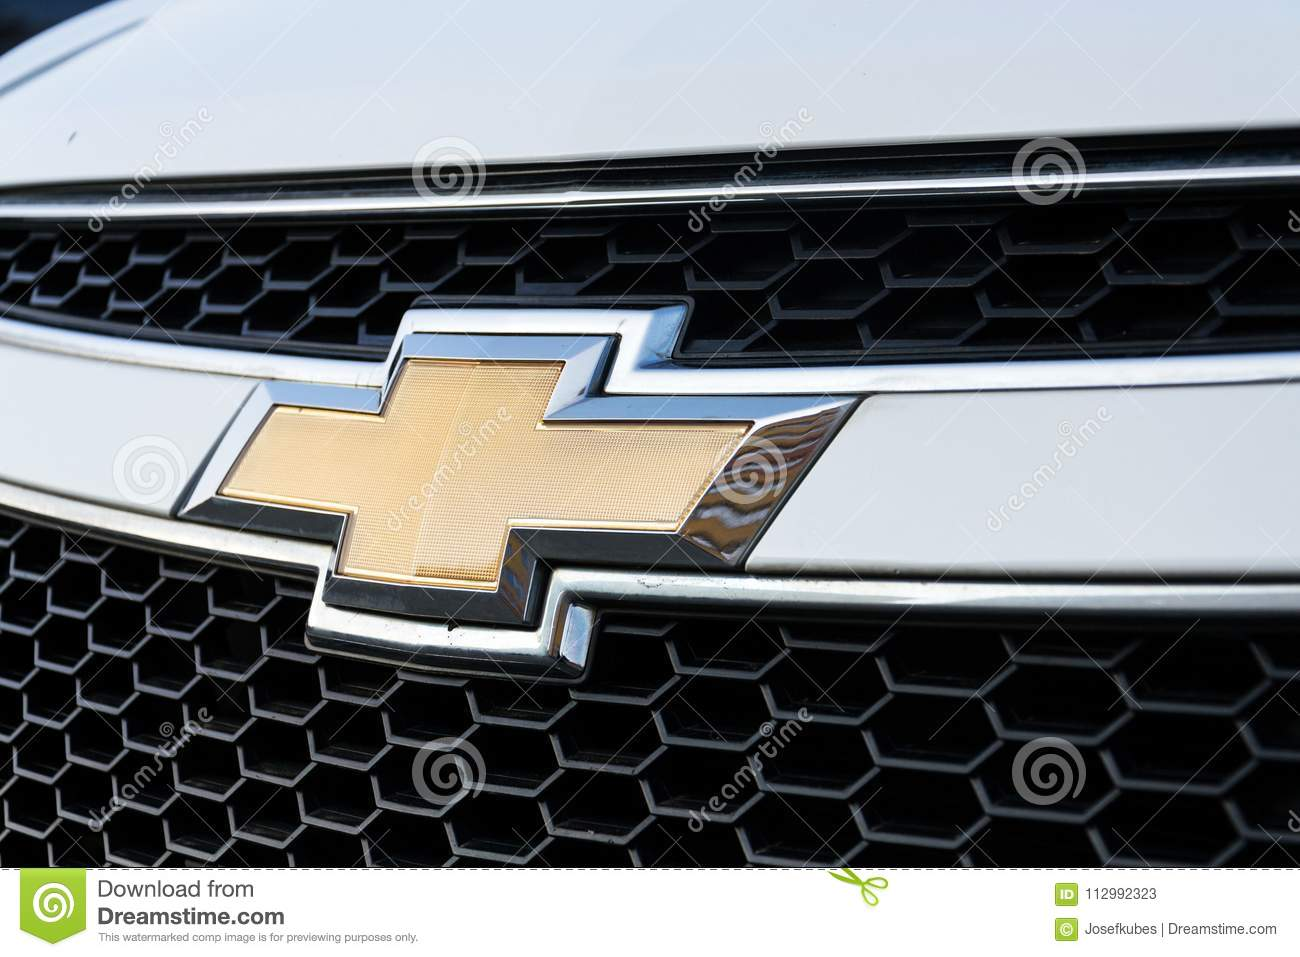 Chevrolet Division of General Motors Company logo on silver car